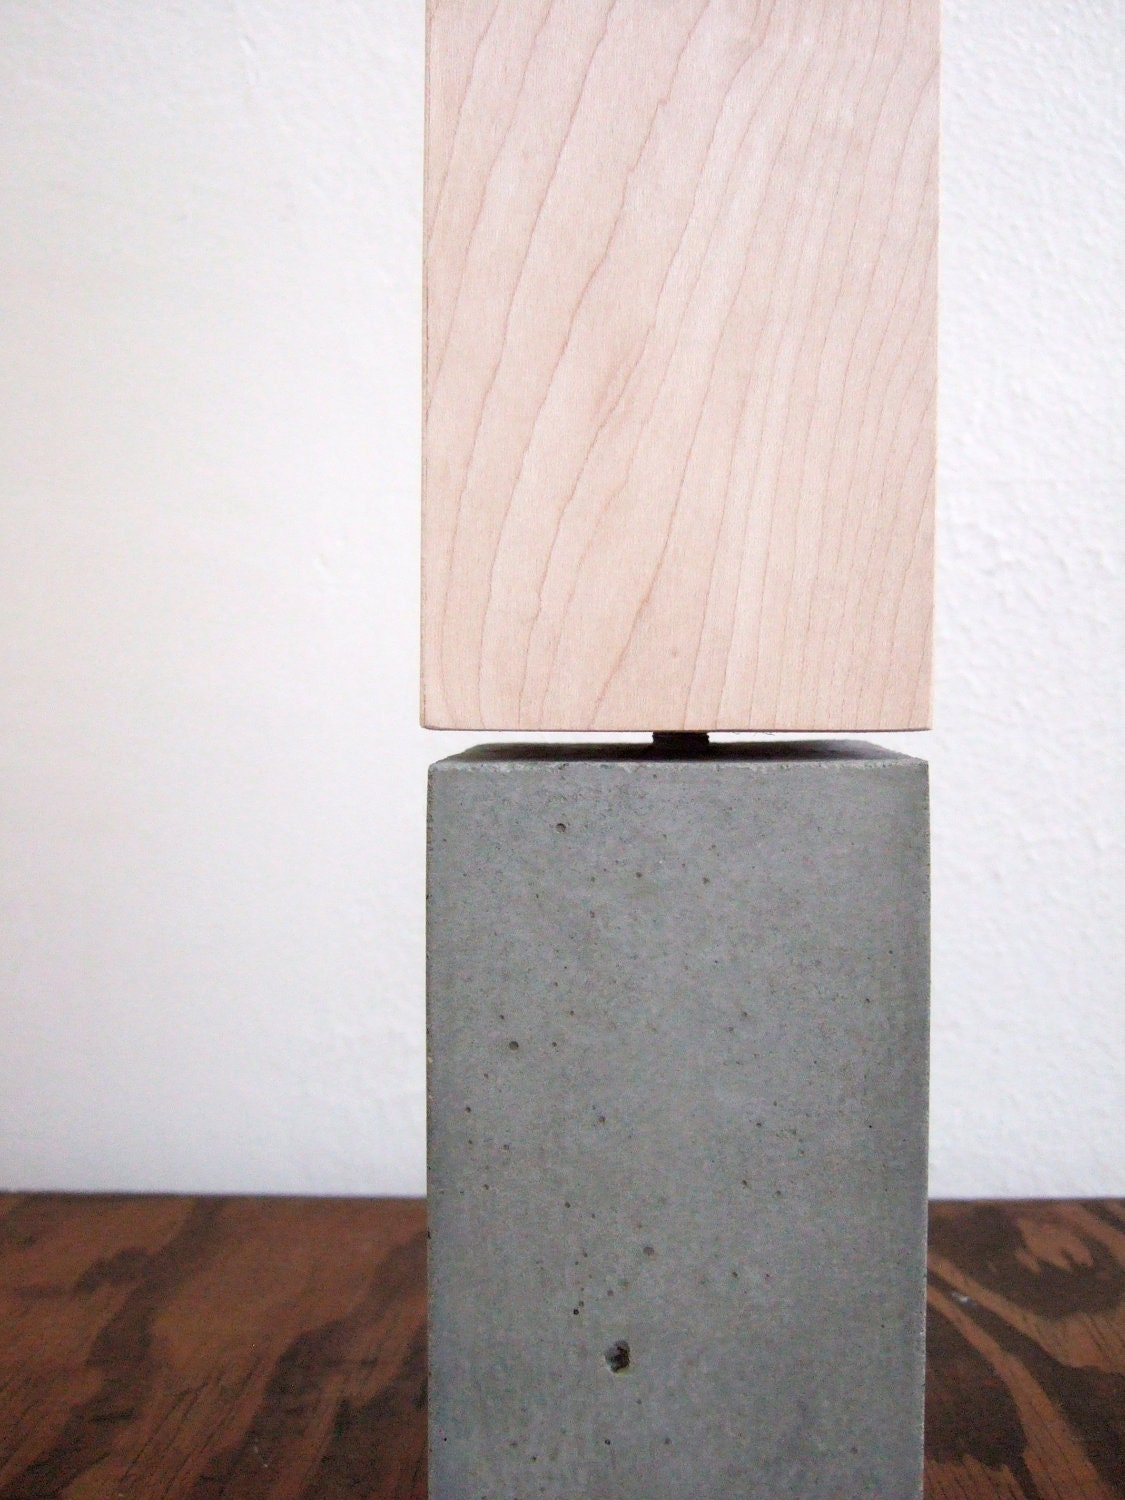 petite concrete table lamp. with wood veneer lampshade.